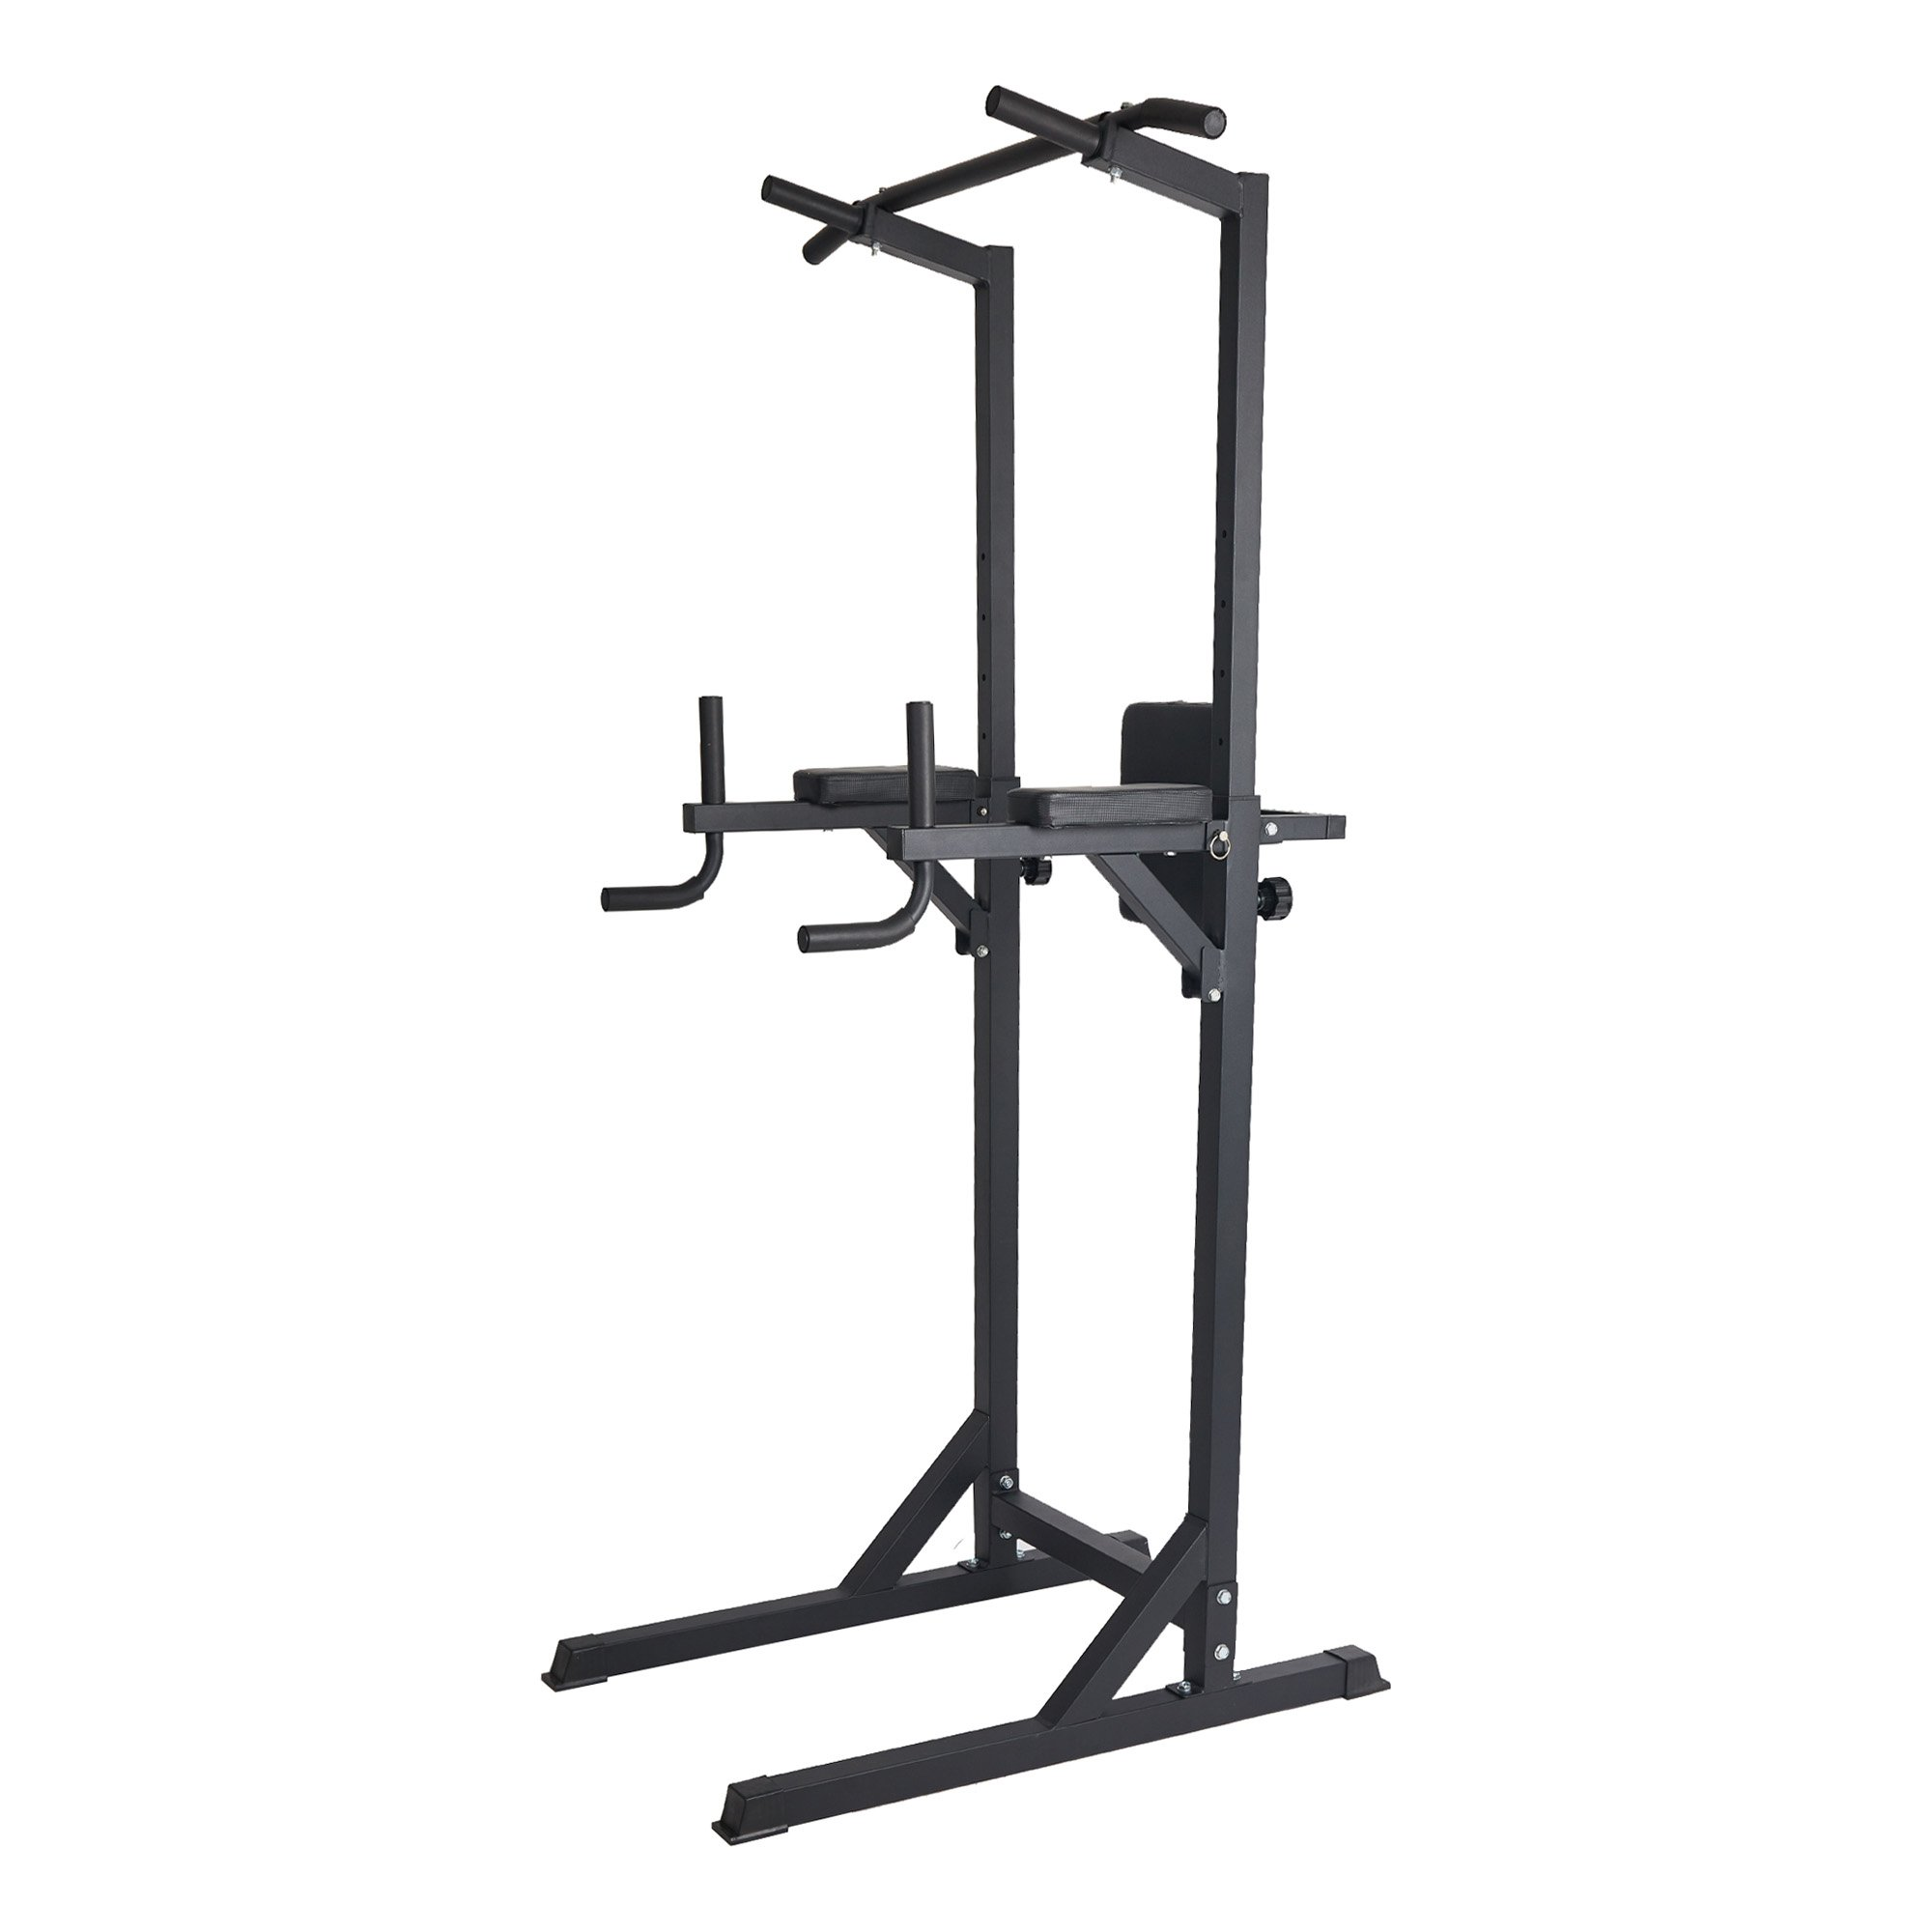 Livebest Heavy Duty Fitness Power Tower Multi-Function Strength Training Workout Dip Station Work Out Equipment for Home Gym by Livebest (Image #1)